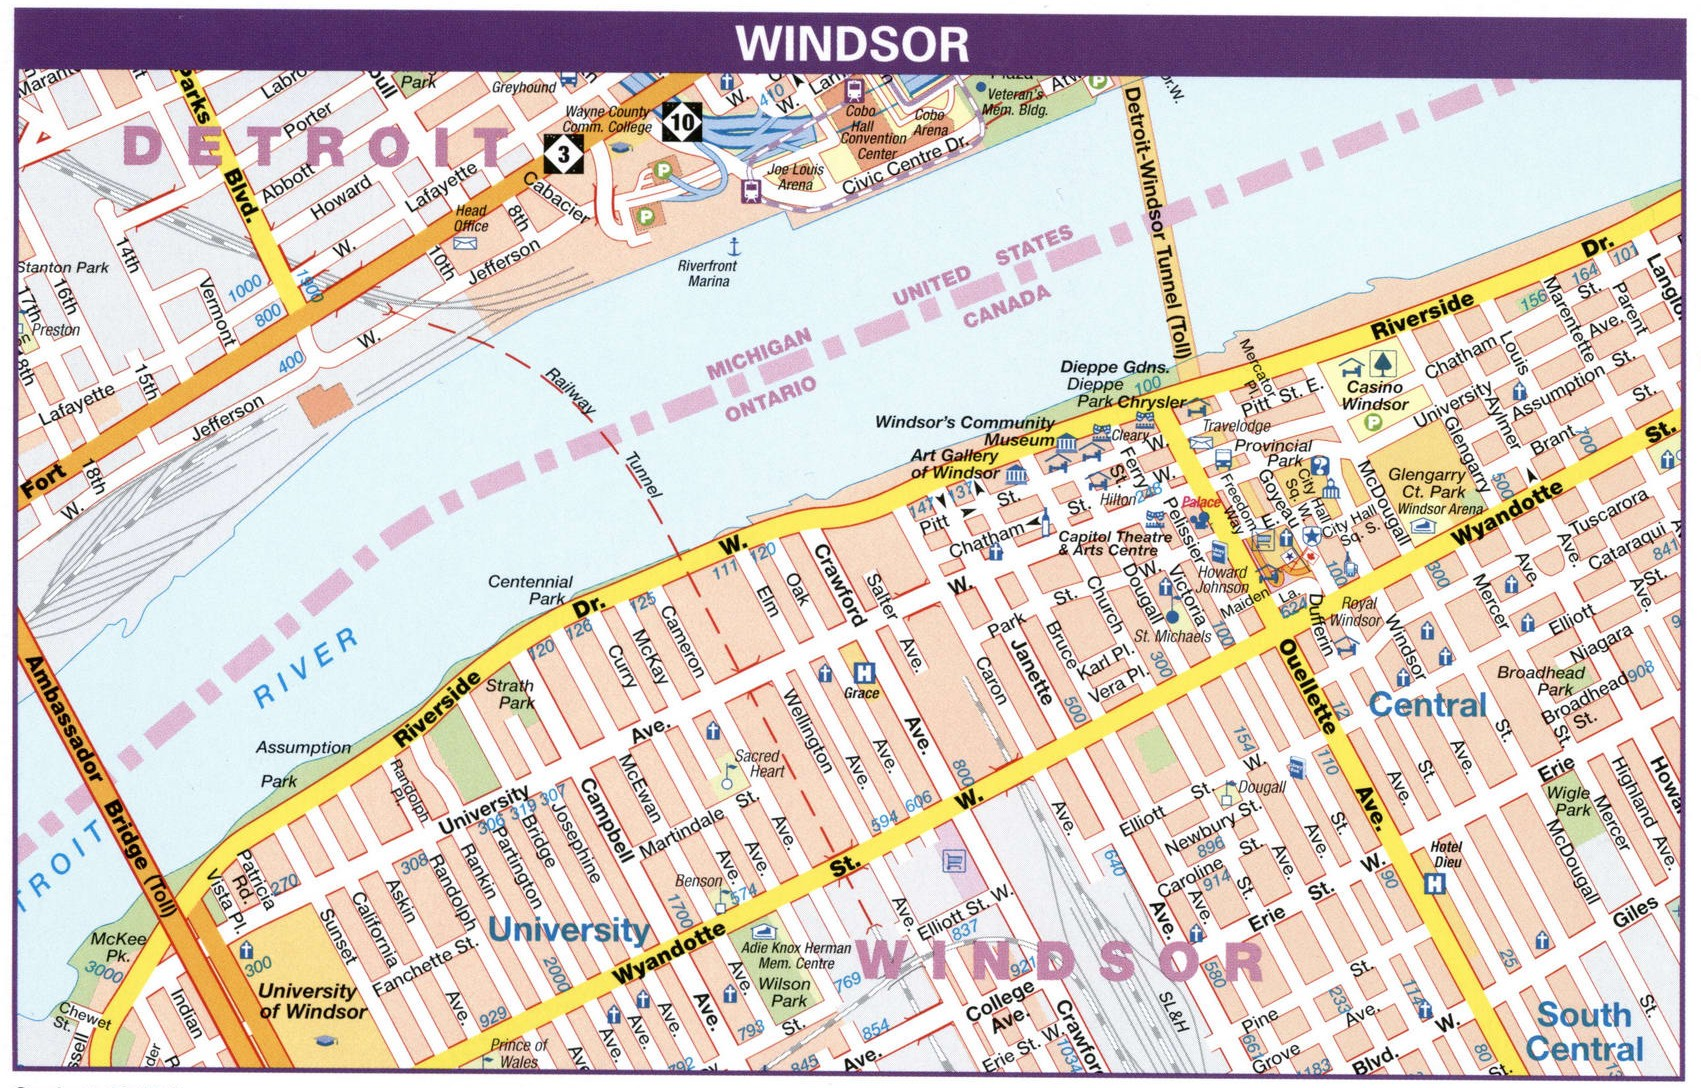 Windsor road map